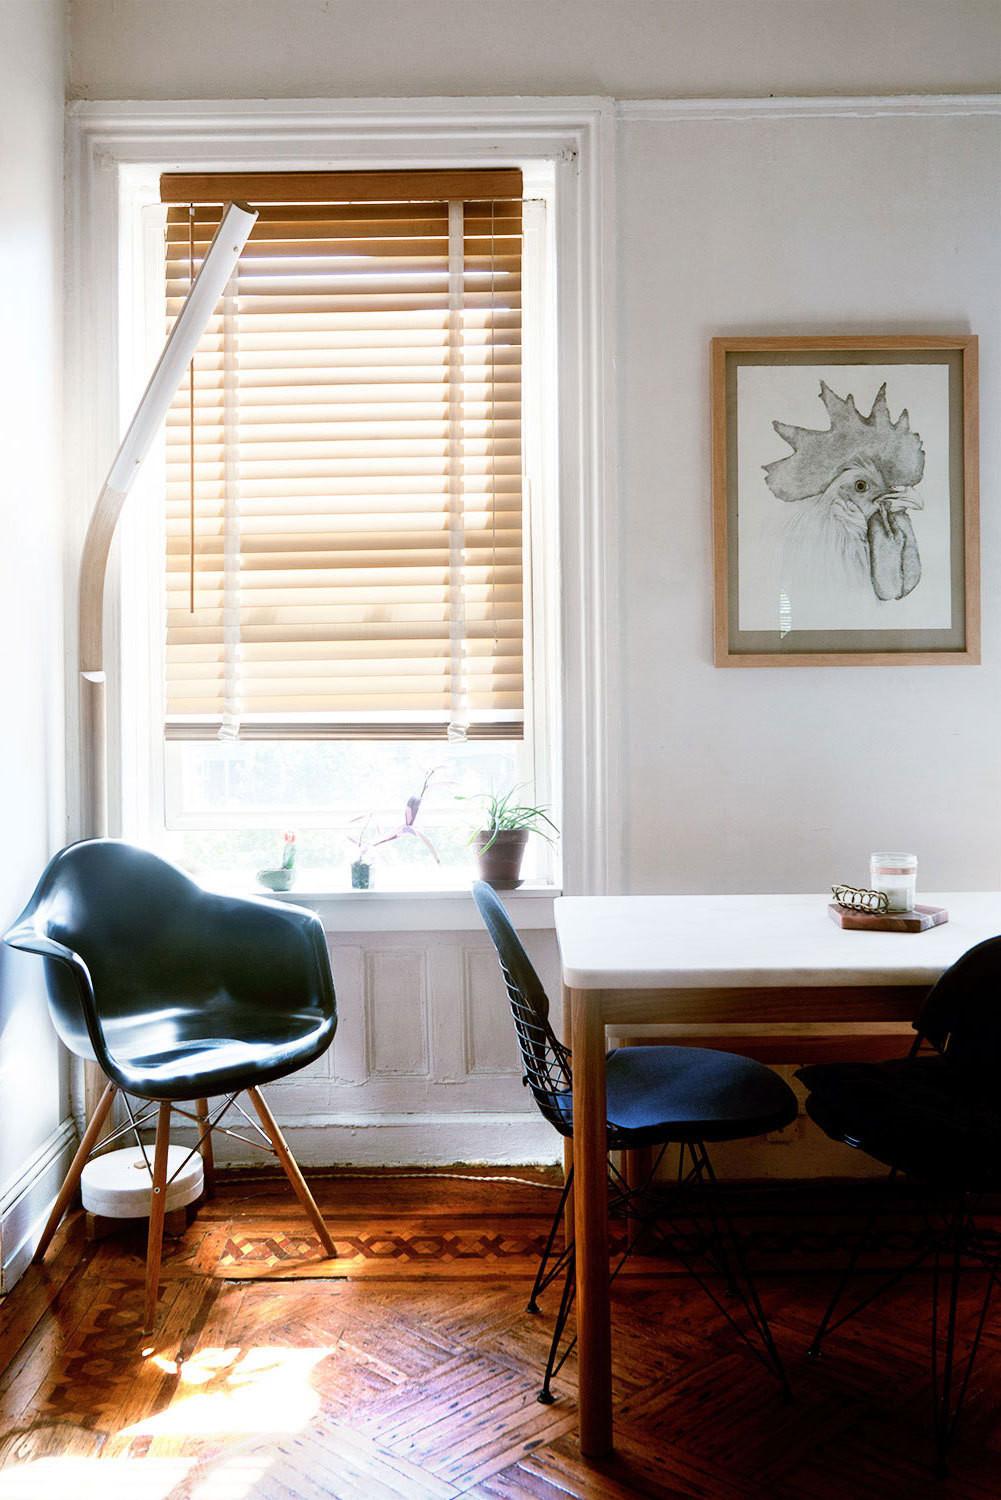 A molded chair catches the sunlight in a windowed corner of Buntain's Clinton Hill living room.